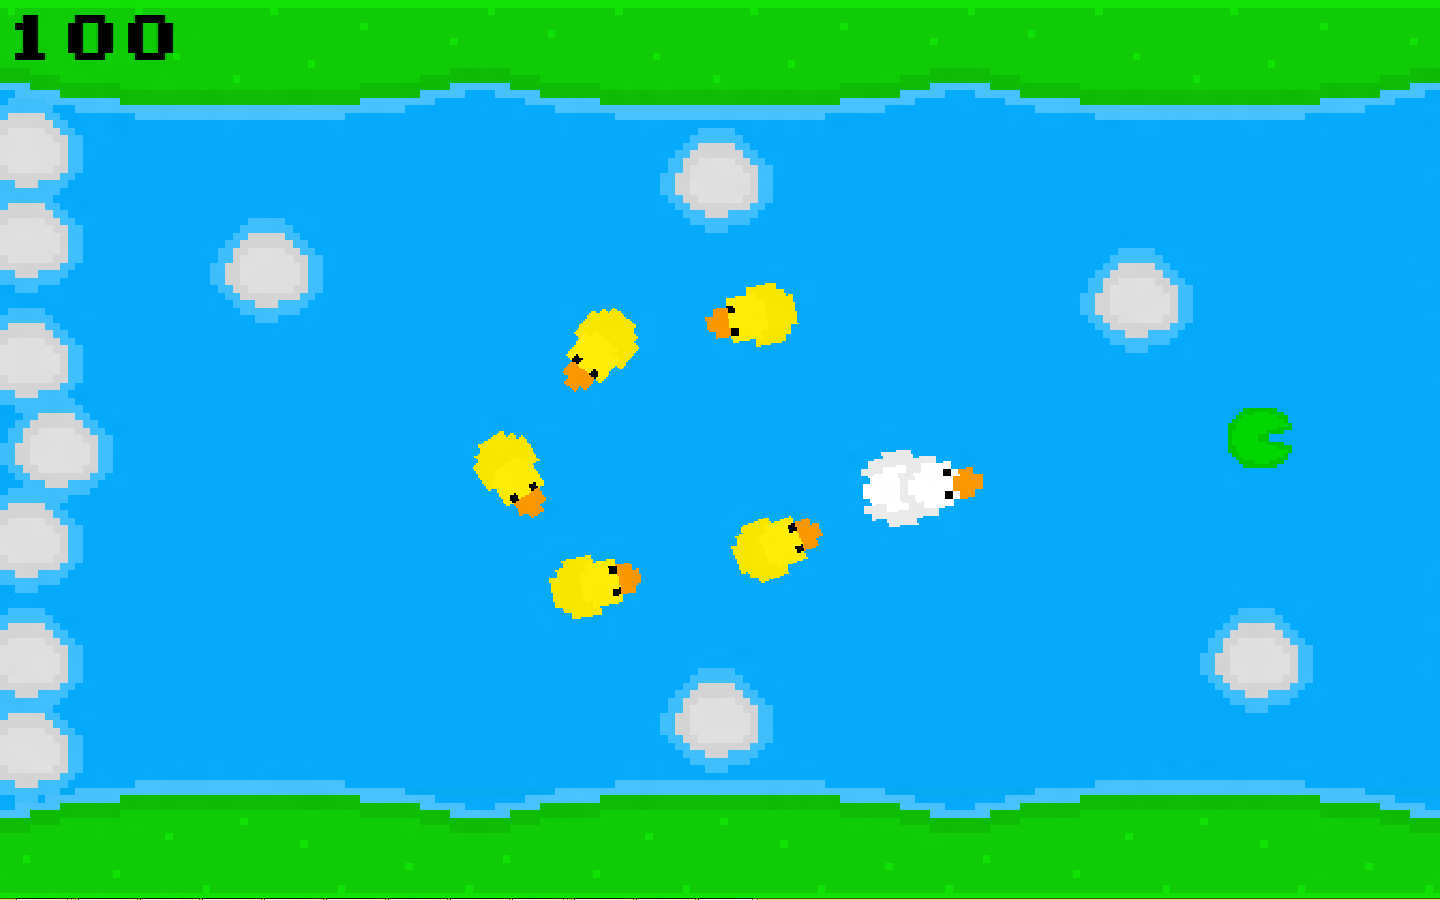 ducks.png